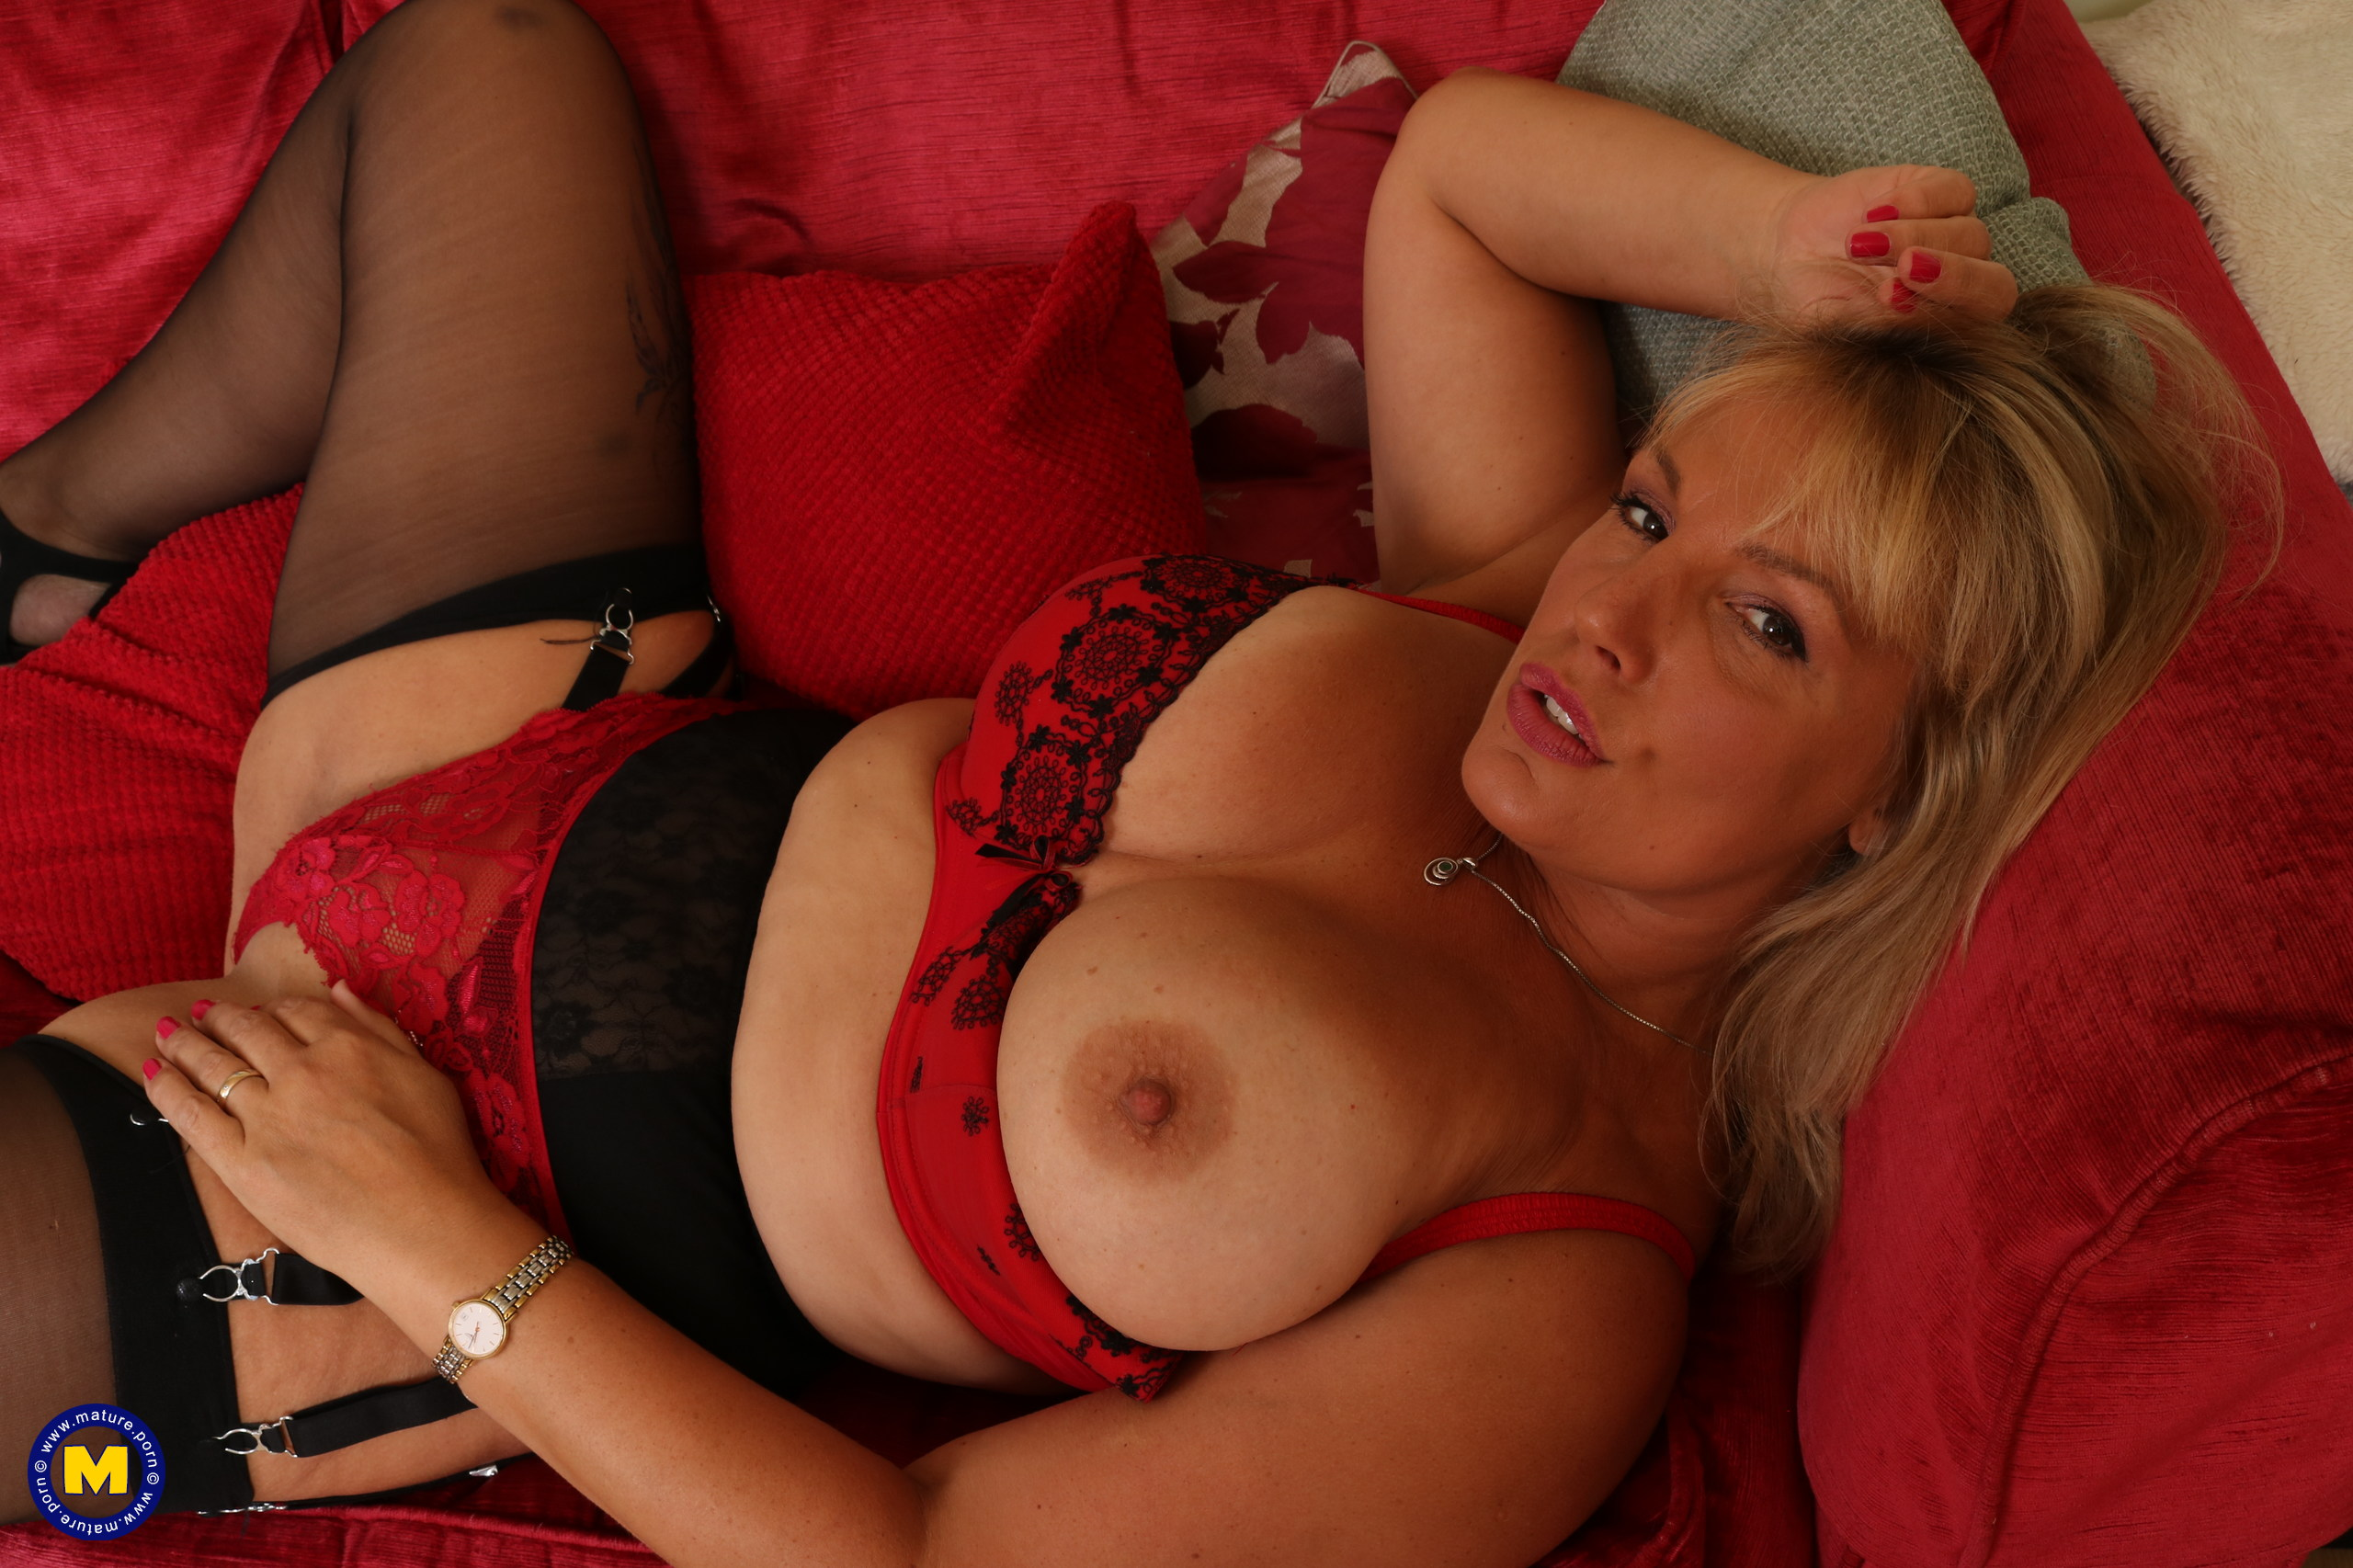 lucious chubby 55 years old granny mom with useful cunt waits for a refill #1